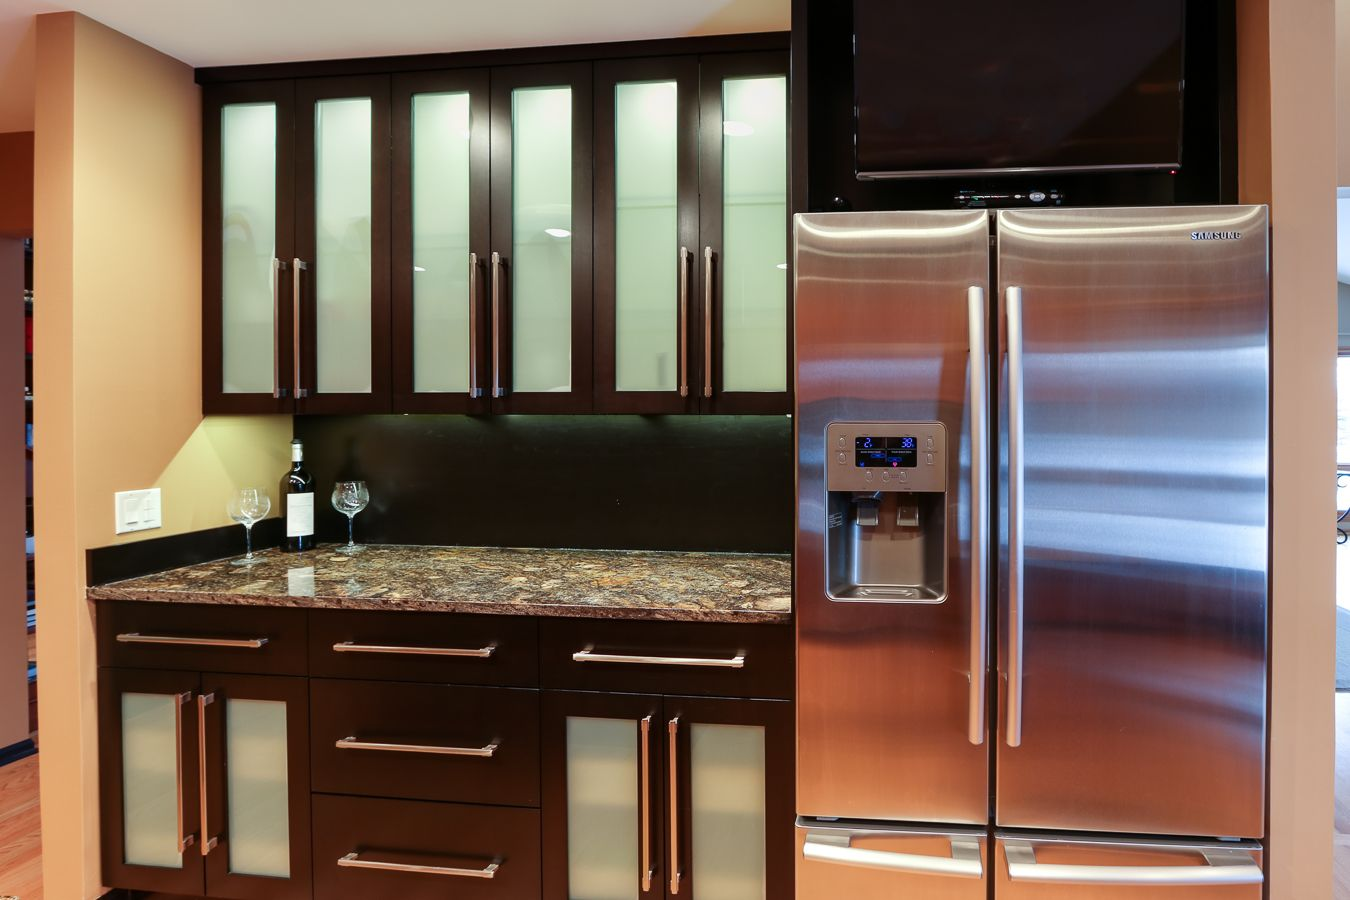 Finished Kitchens - Icon Building Group | Kitchens | Kitchen ...